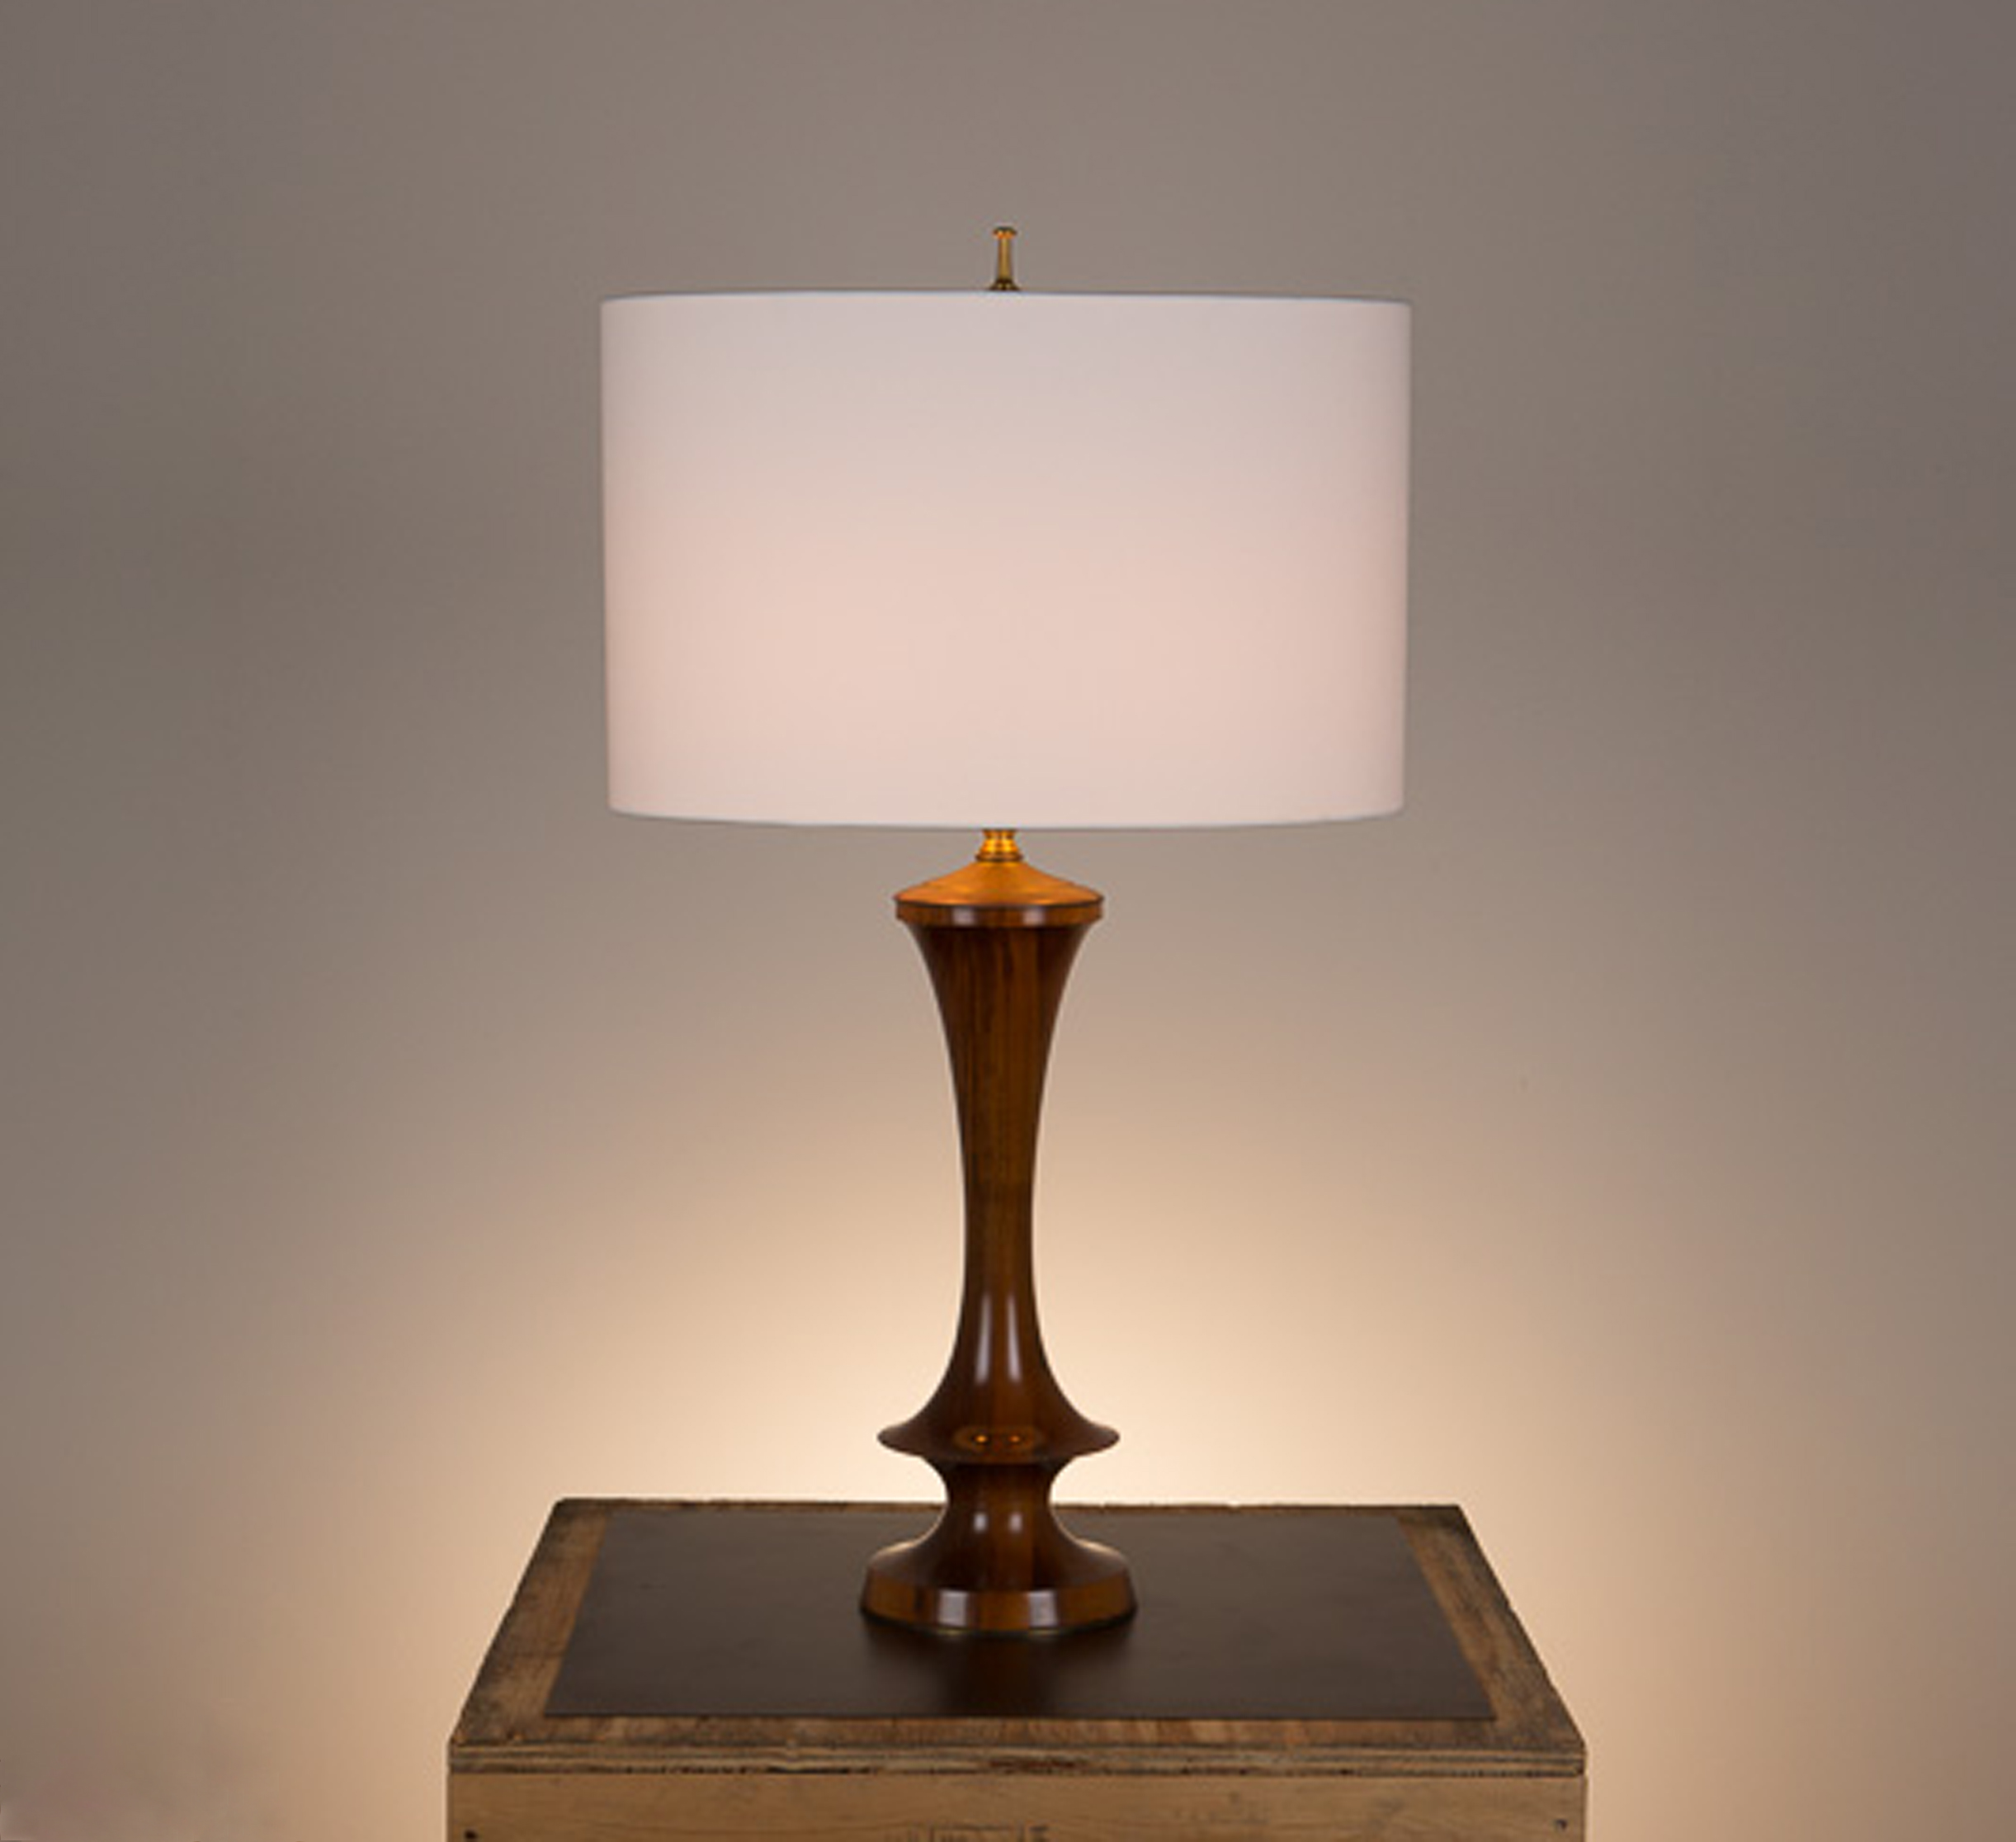 Samantha Table Lamp #1  French polished walnut, hand polished unlacquered brass fittings. 738 white linen oval shade.